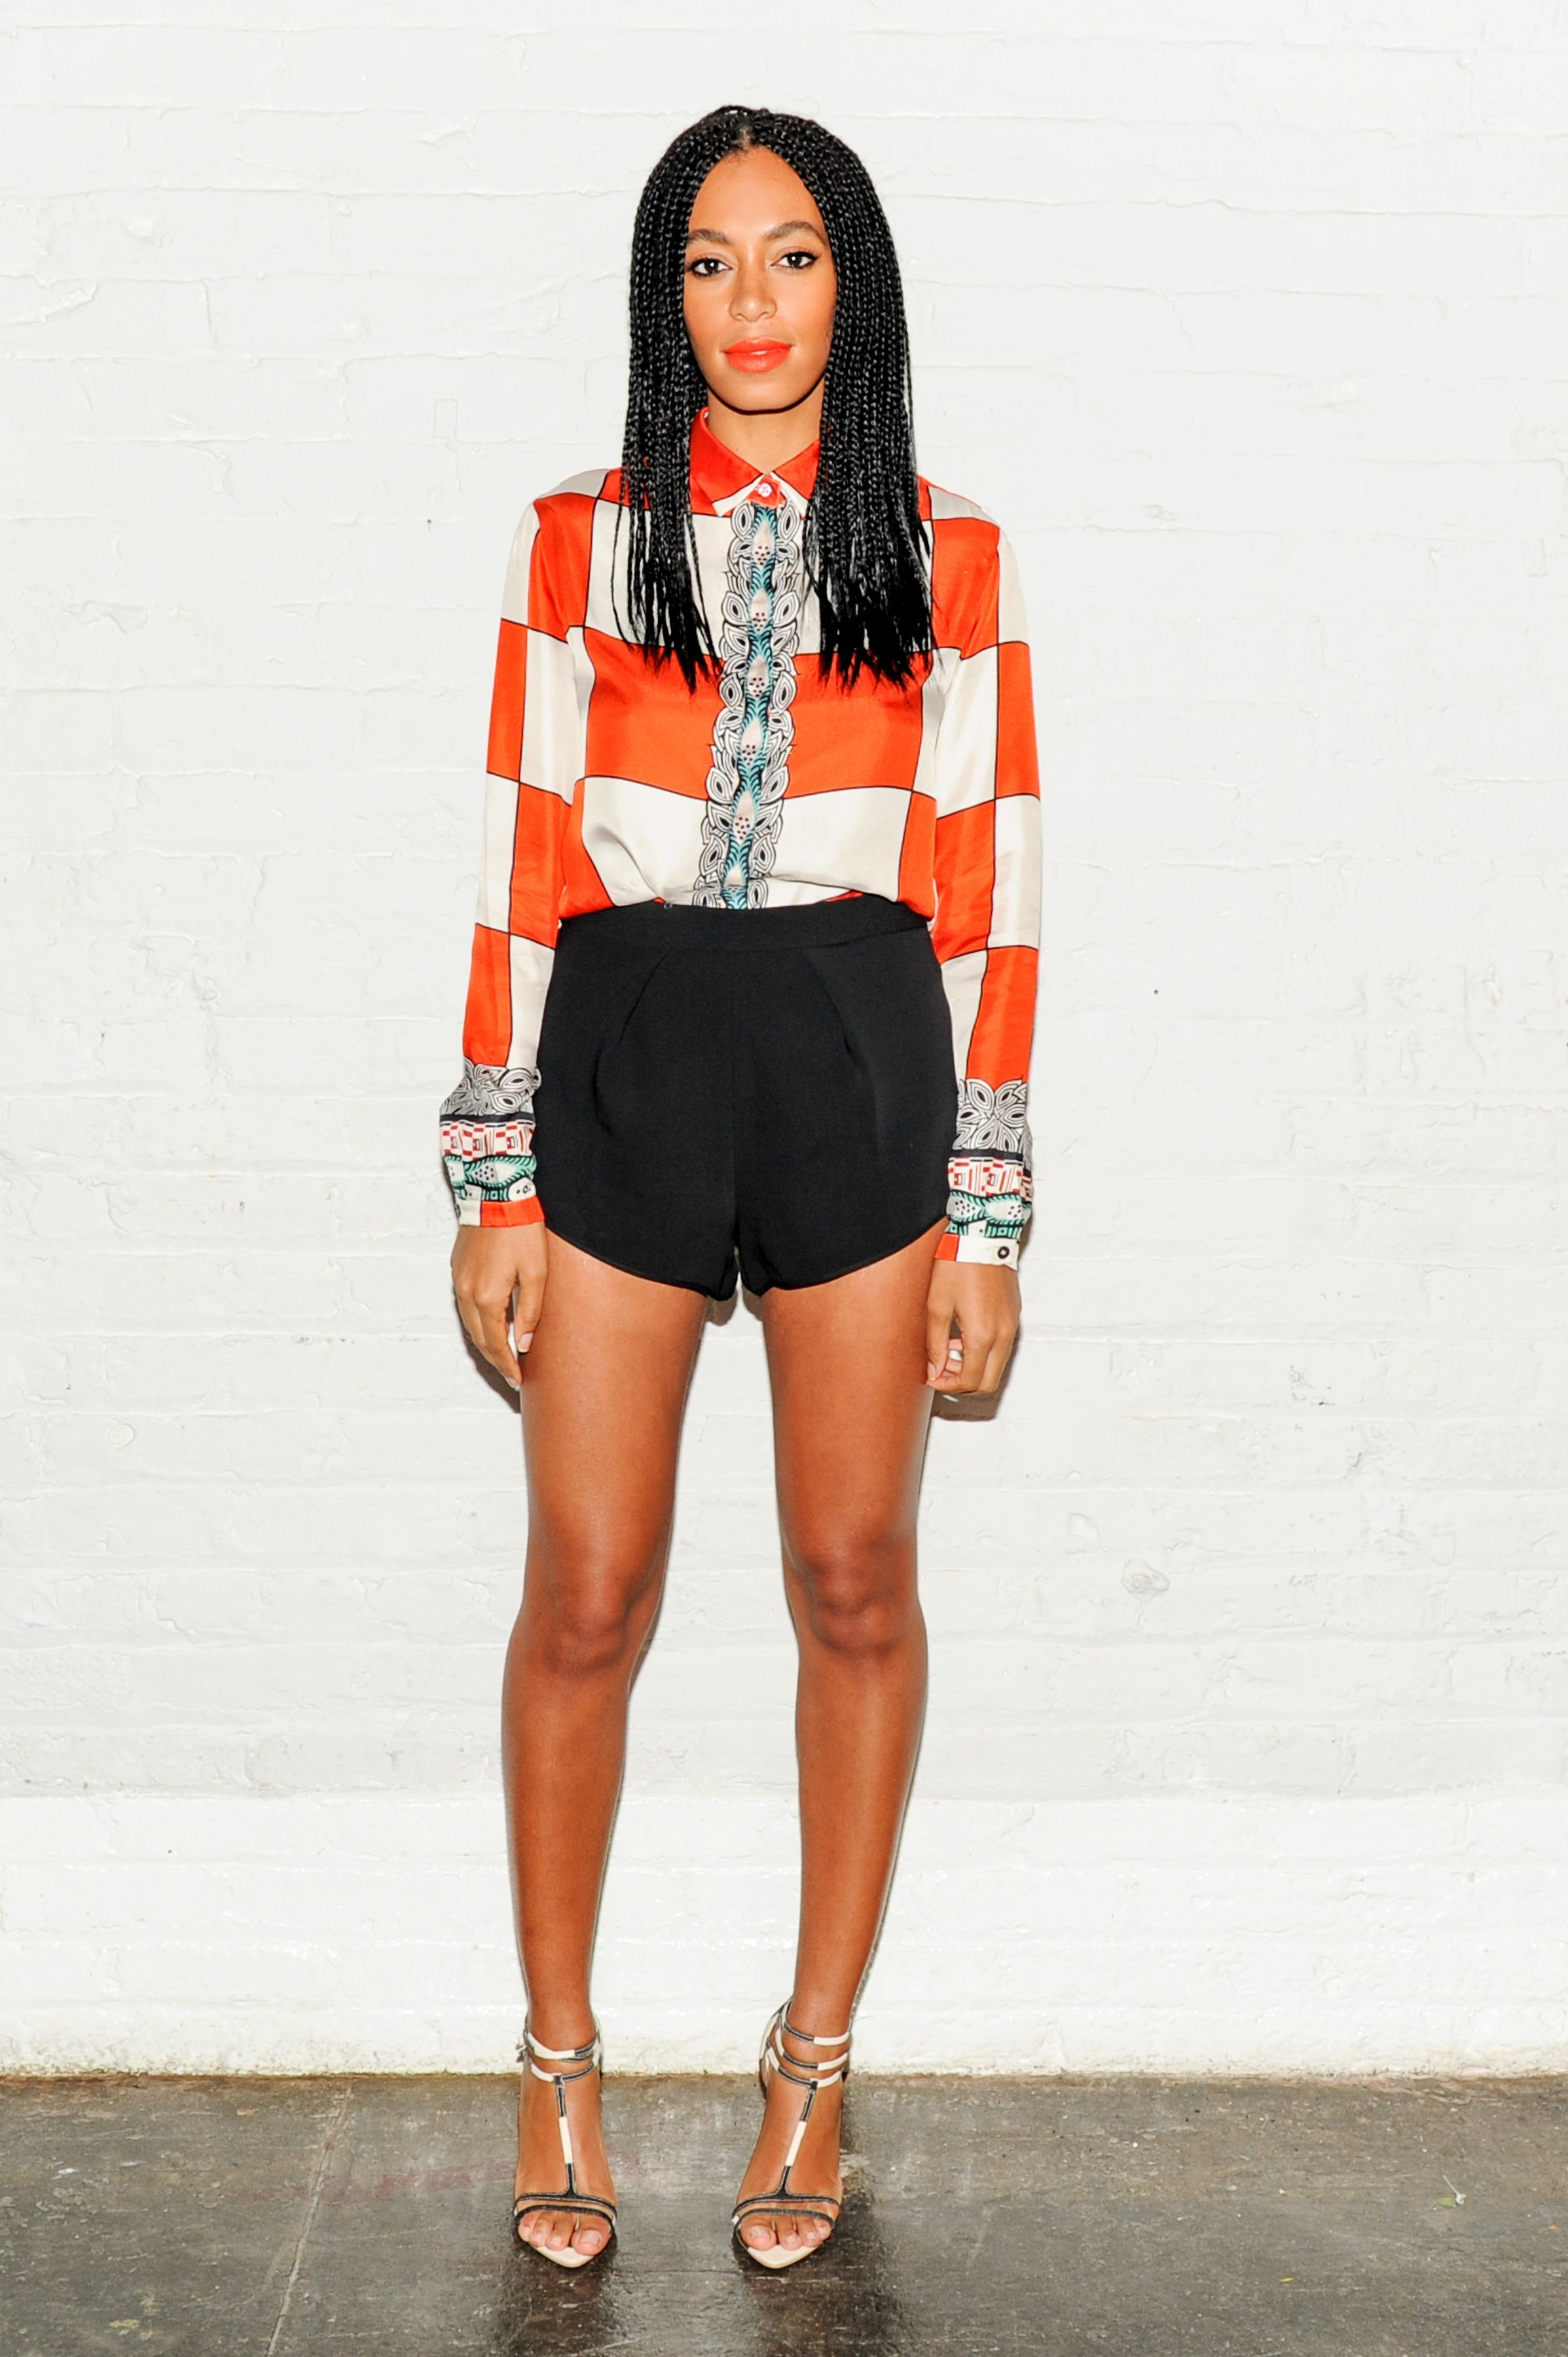 Solange Knowles short shorts